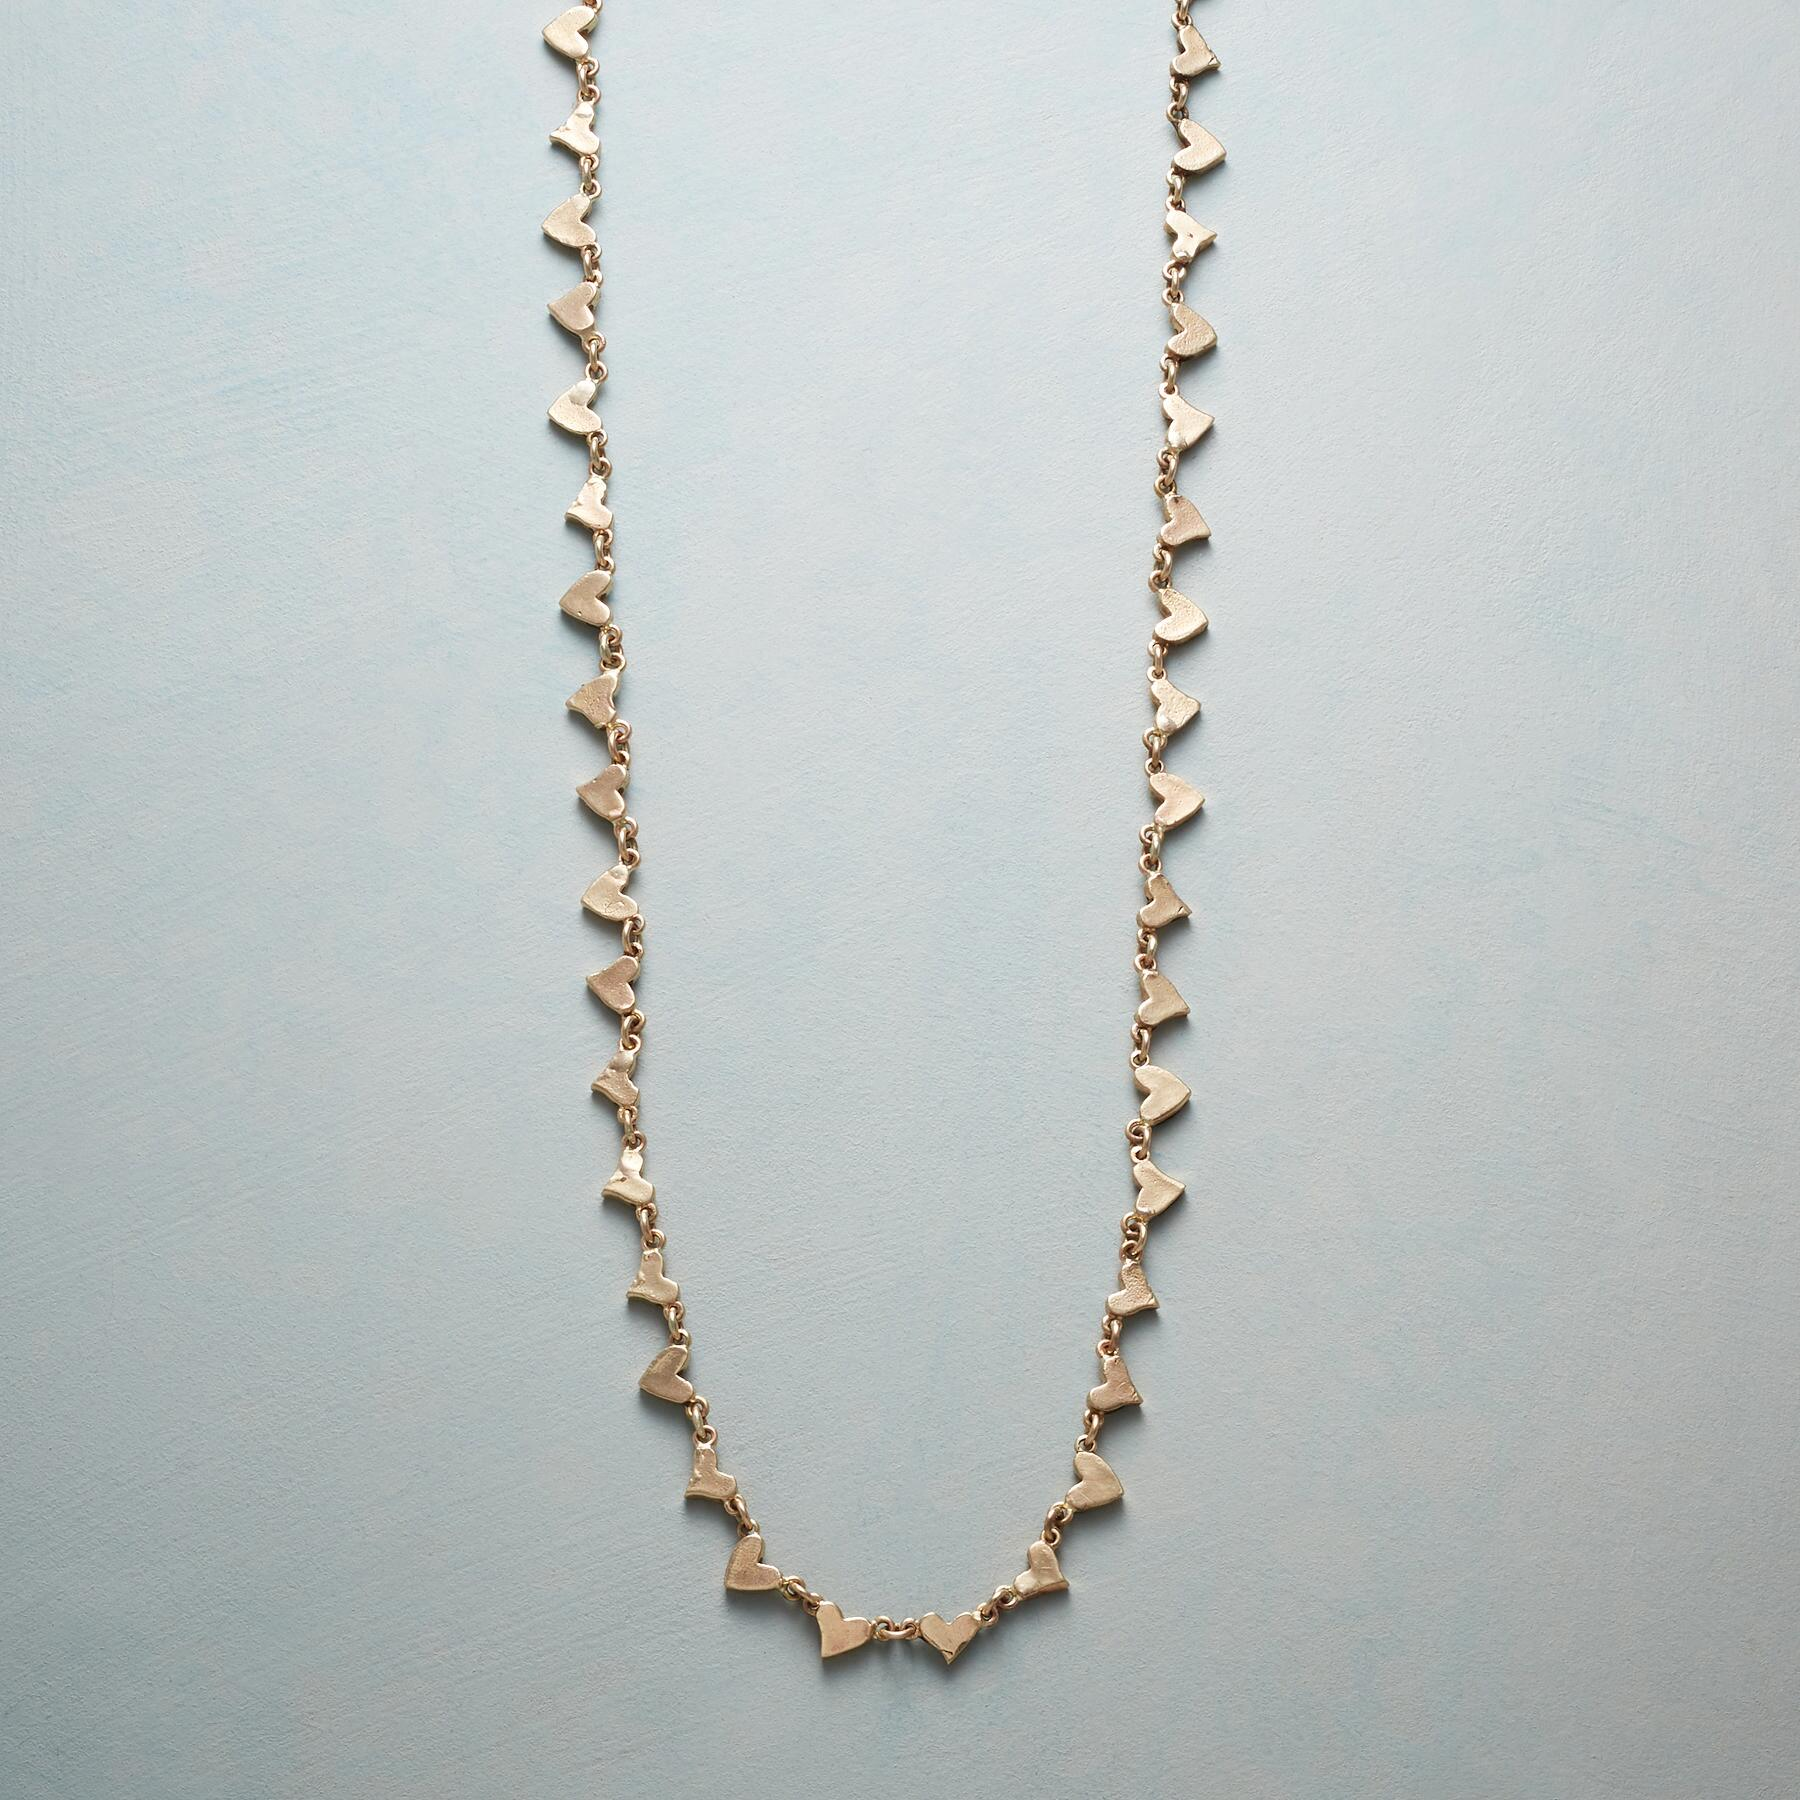 14KT GOLD CHAIN OF HEARTS NECKLACE: View 1